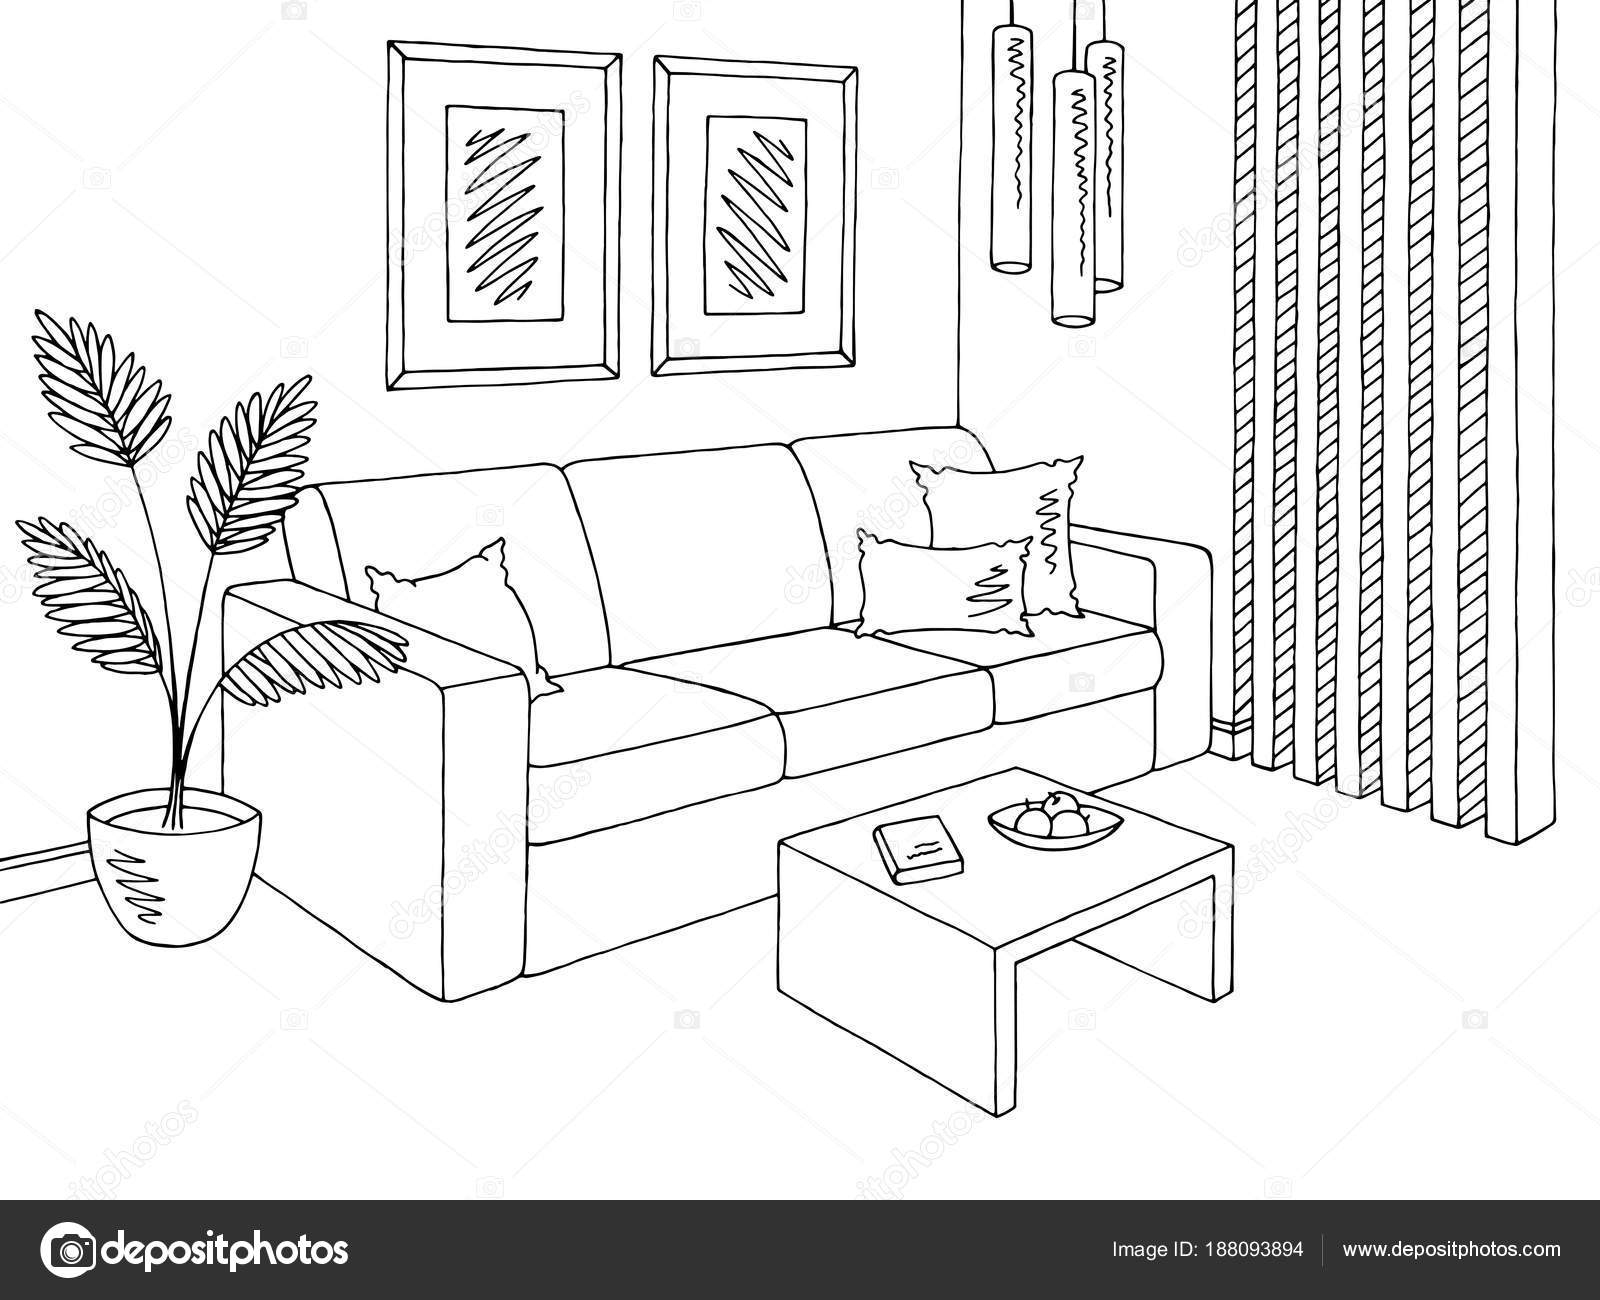 Drawing Room Graphic Design